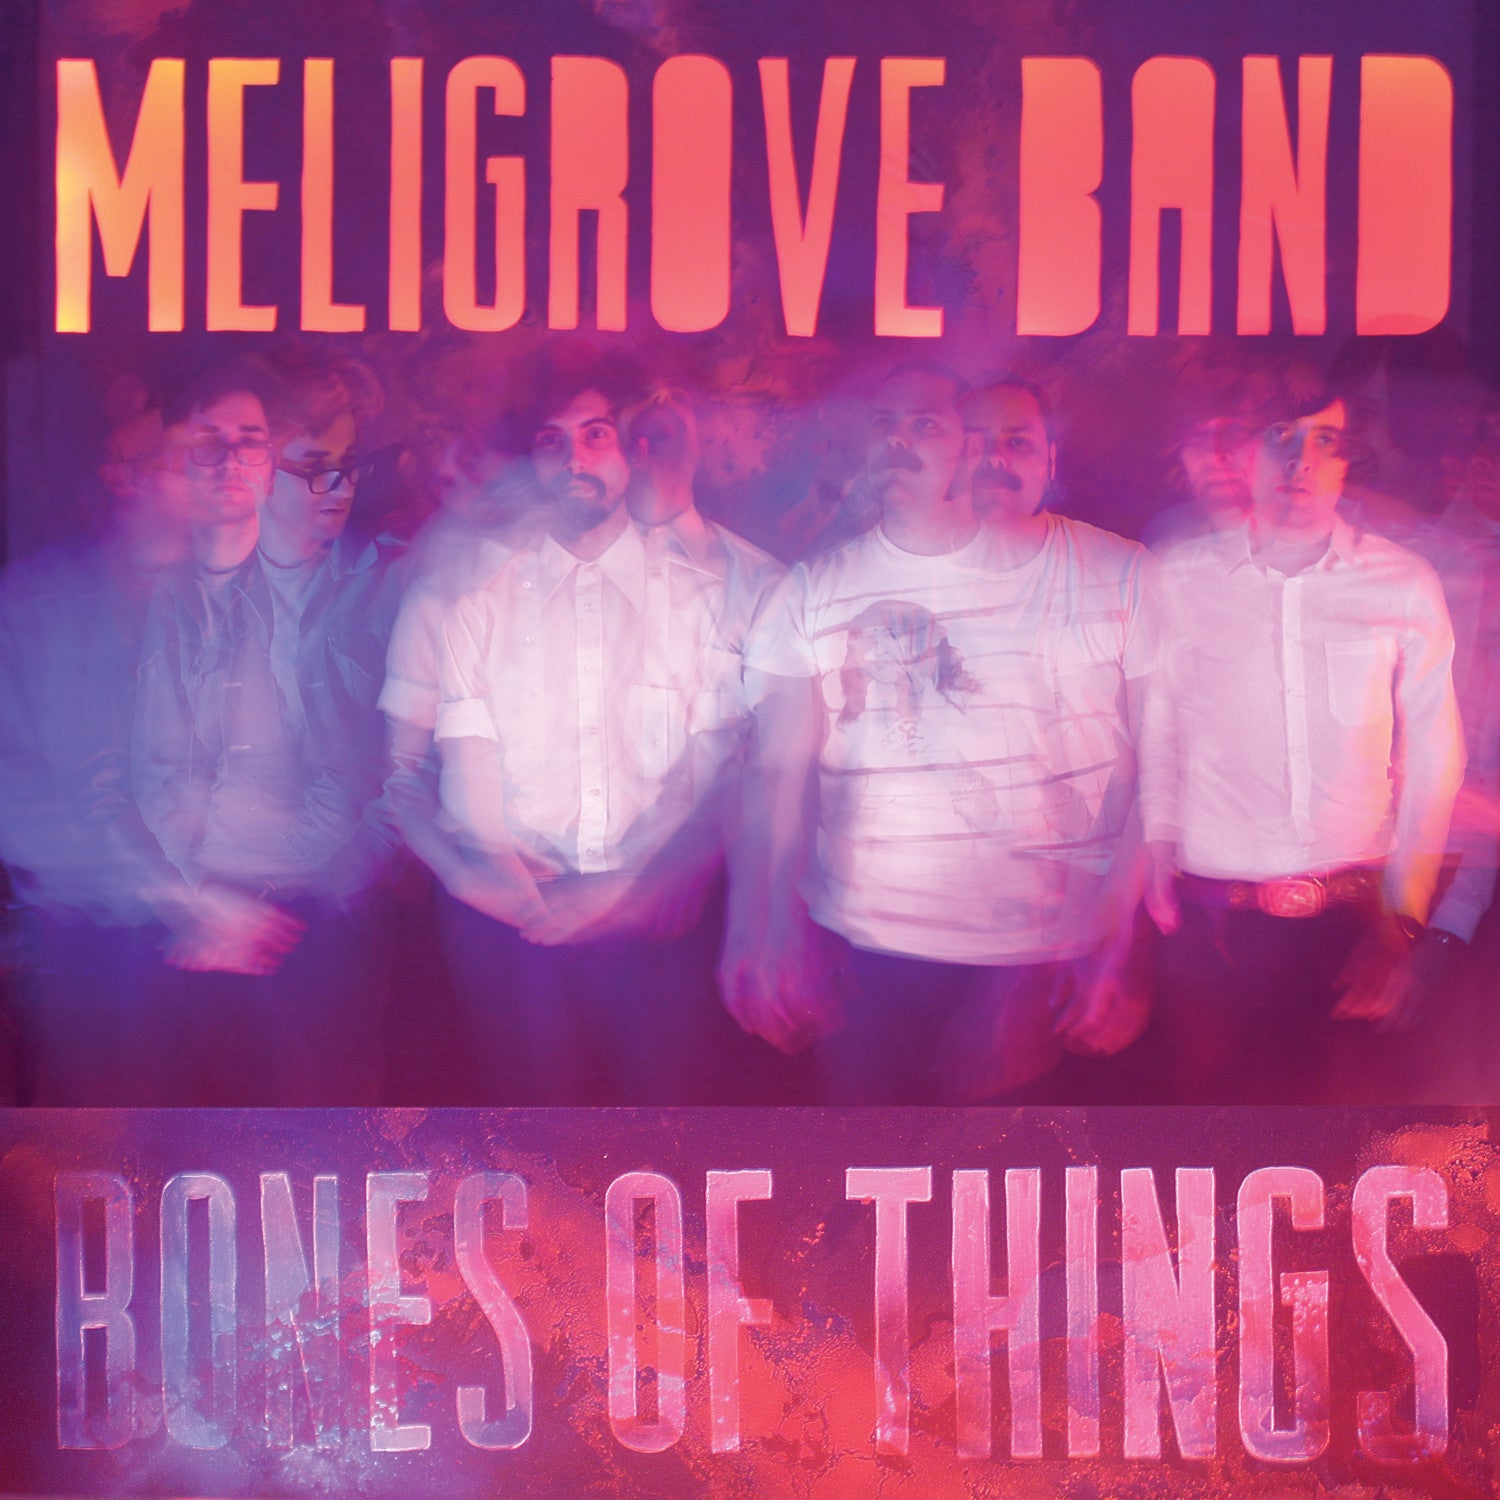 Meligrove Band - Bones of Things (180 Gram LP)